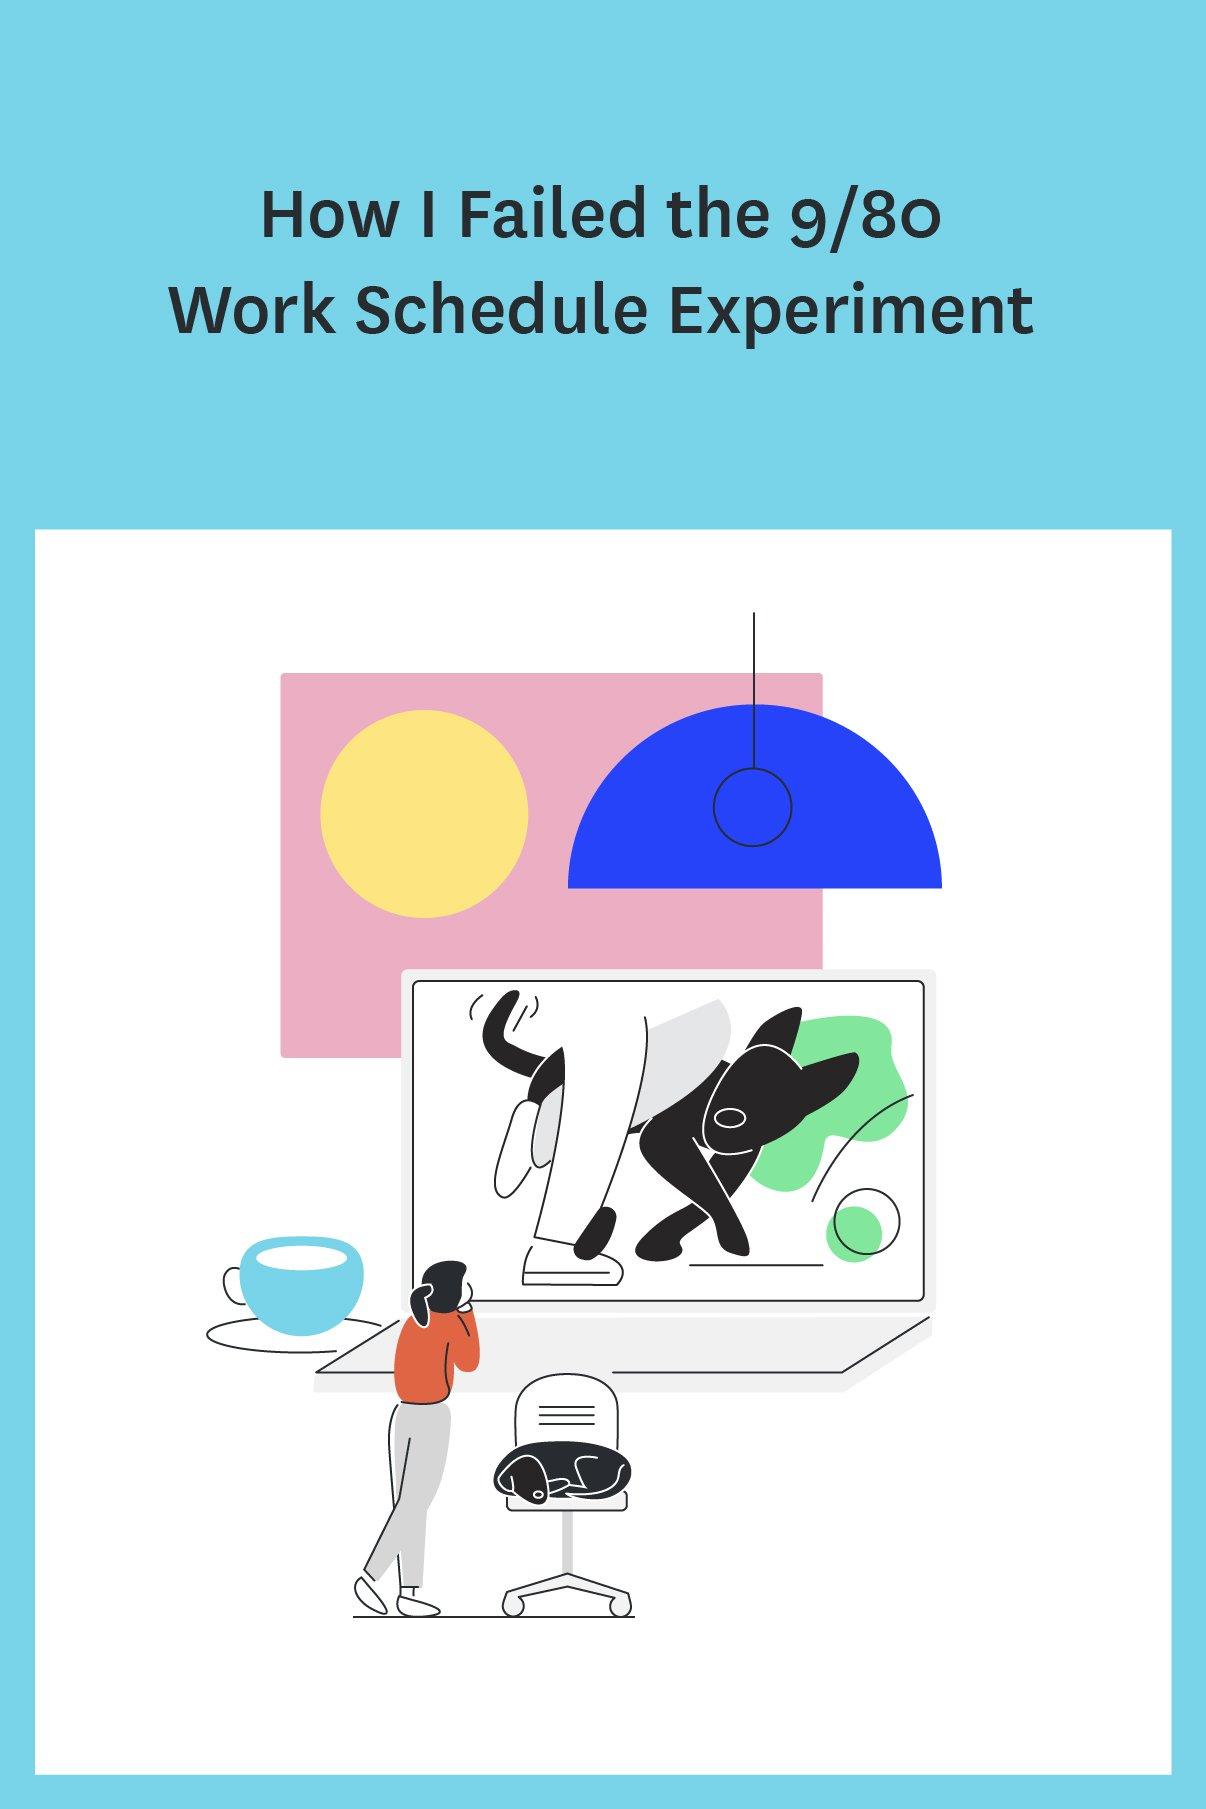 What is a 9/80 work schedule? It's when you work 80 hours in 9 work days, instead of the usual 10 days. If you've been wanting to try a 9/80 work schedule, read this first! Our onboarding manager tried it and her results were surprising.